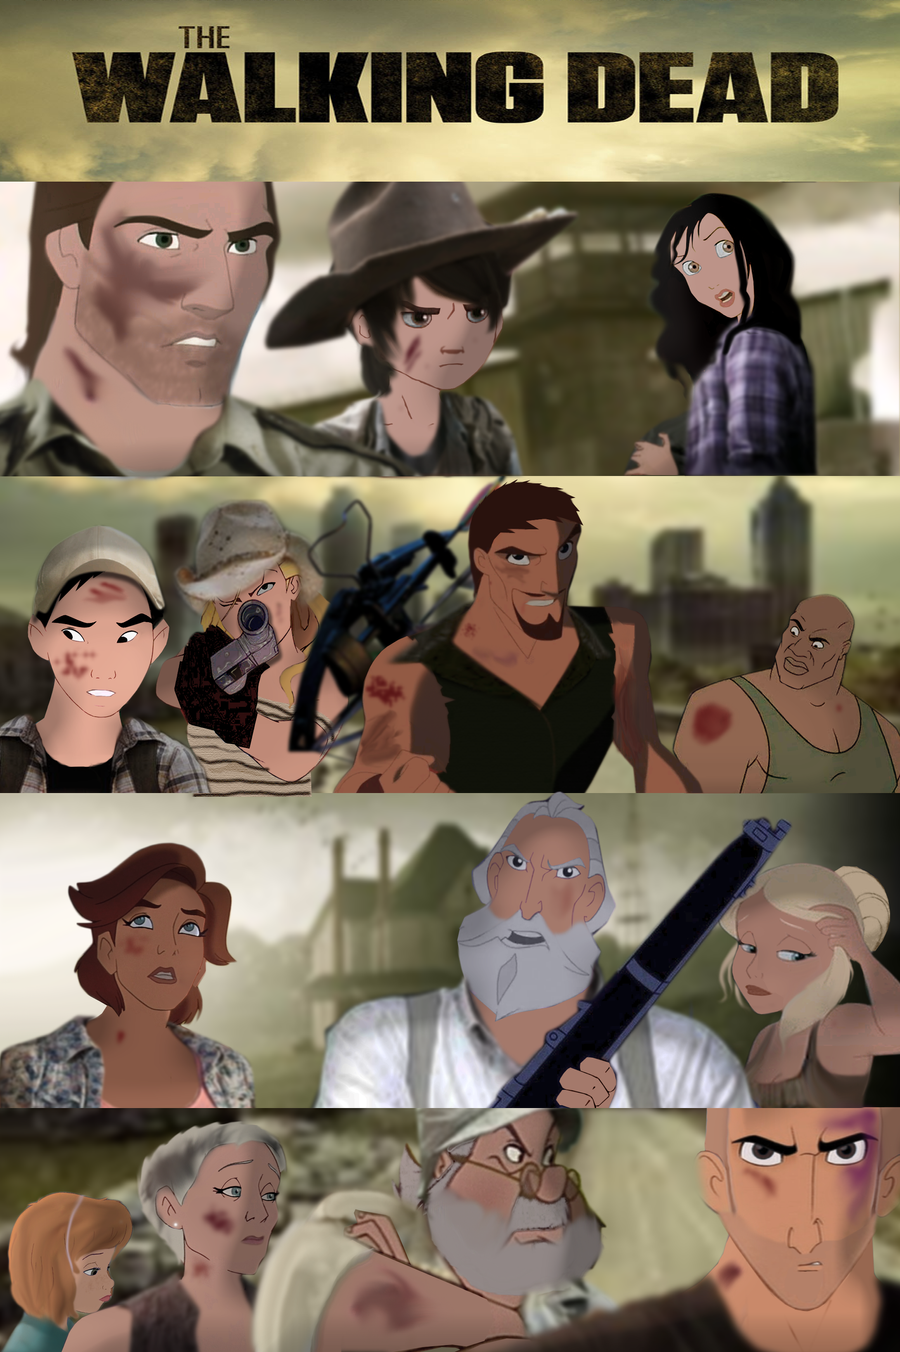 The Walking Dead Animated-Part 1 by mirandaareli